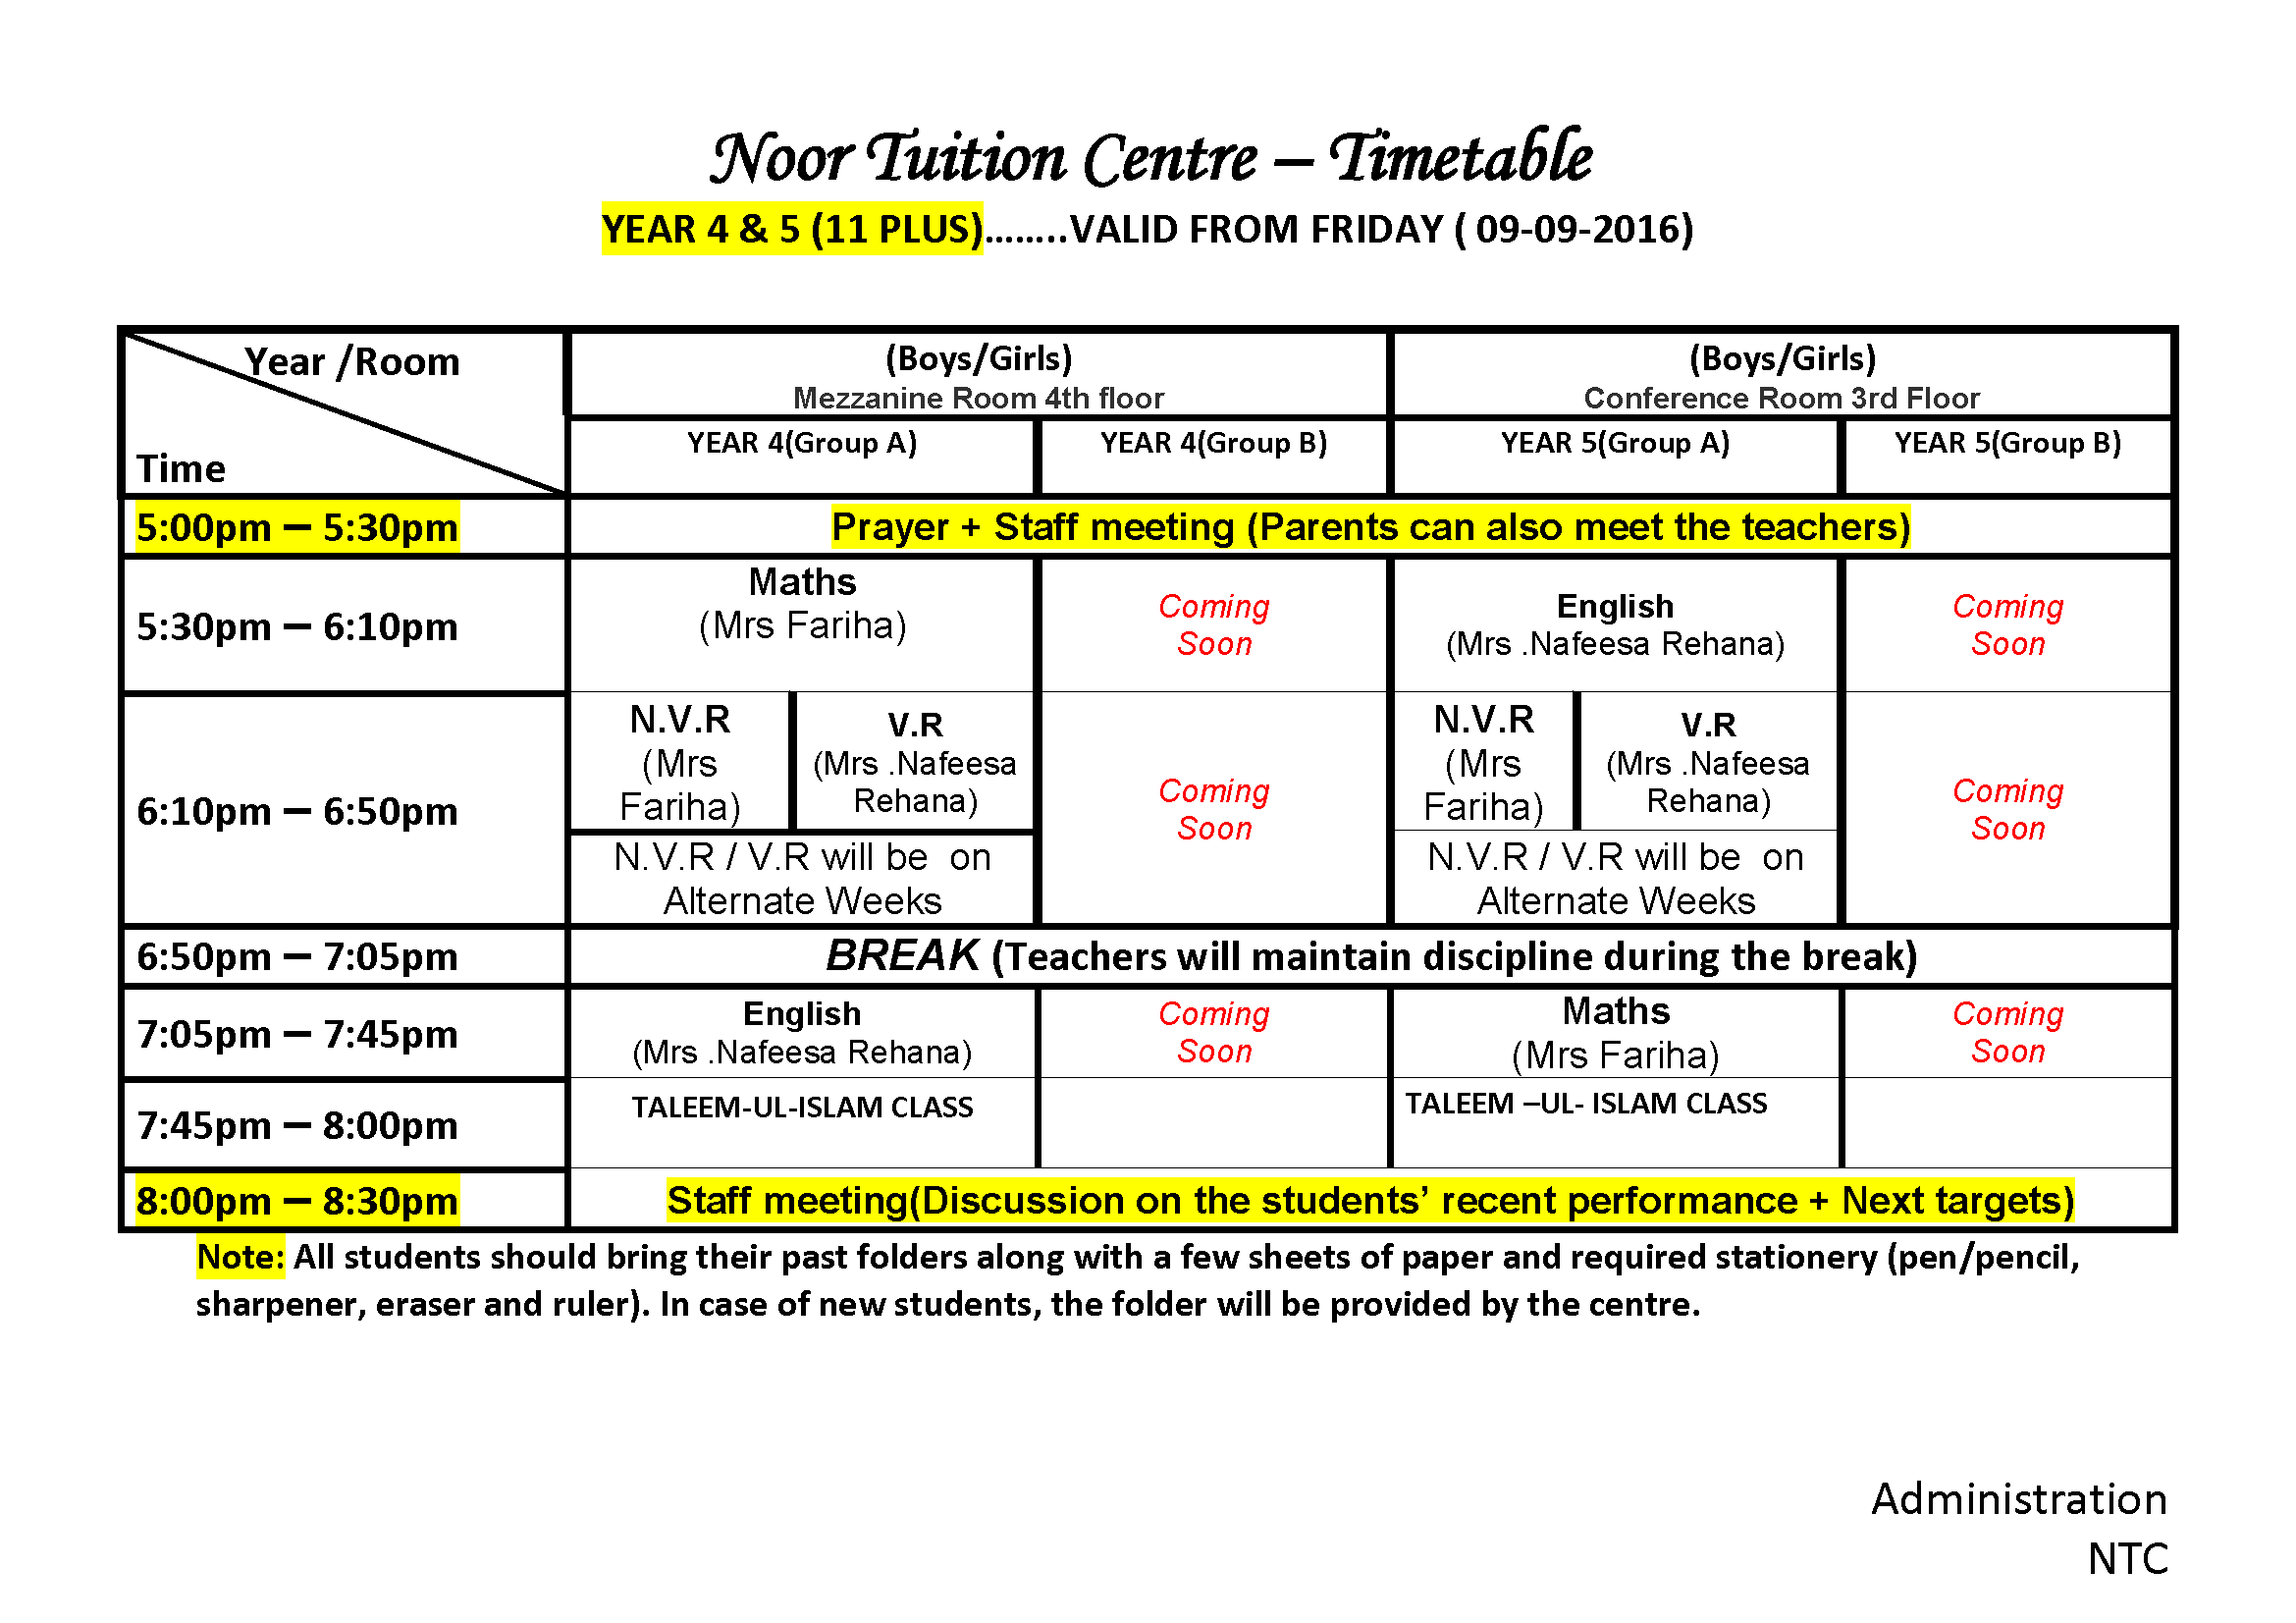 Time Table for classes 4 and 5 (11 PLUS)